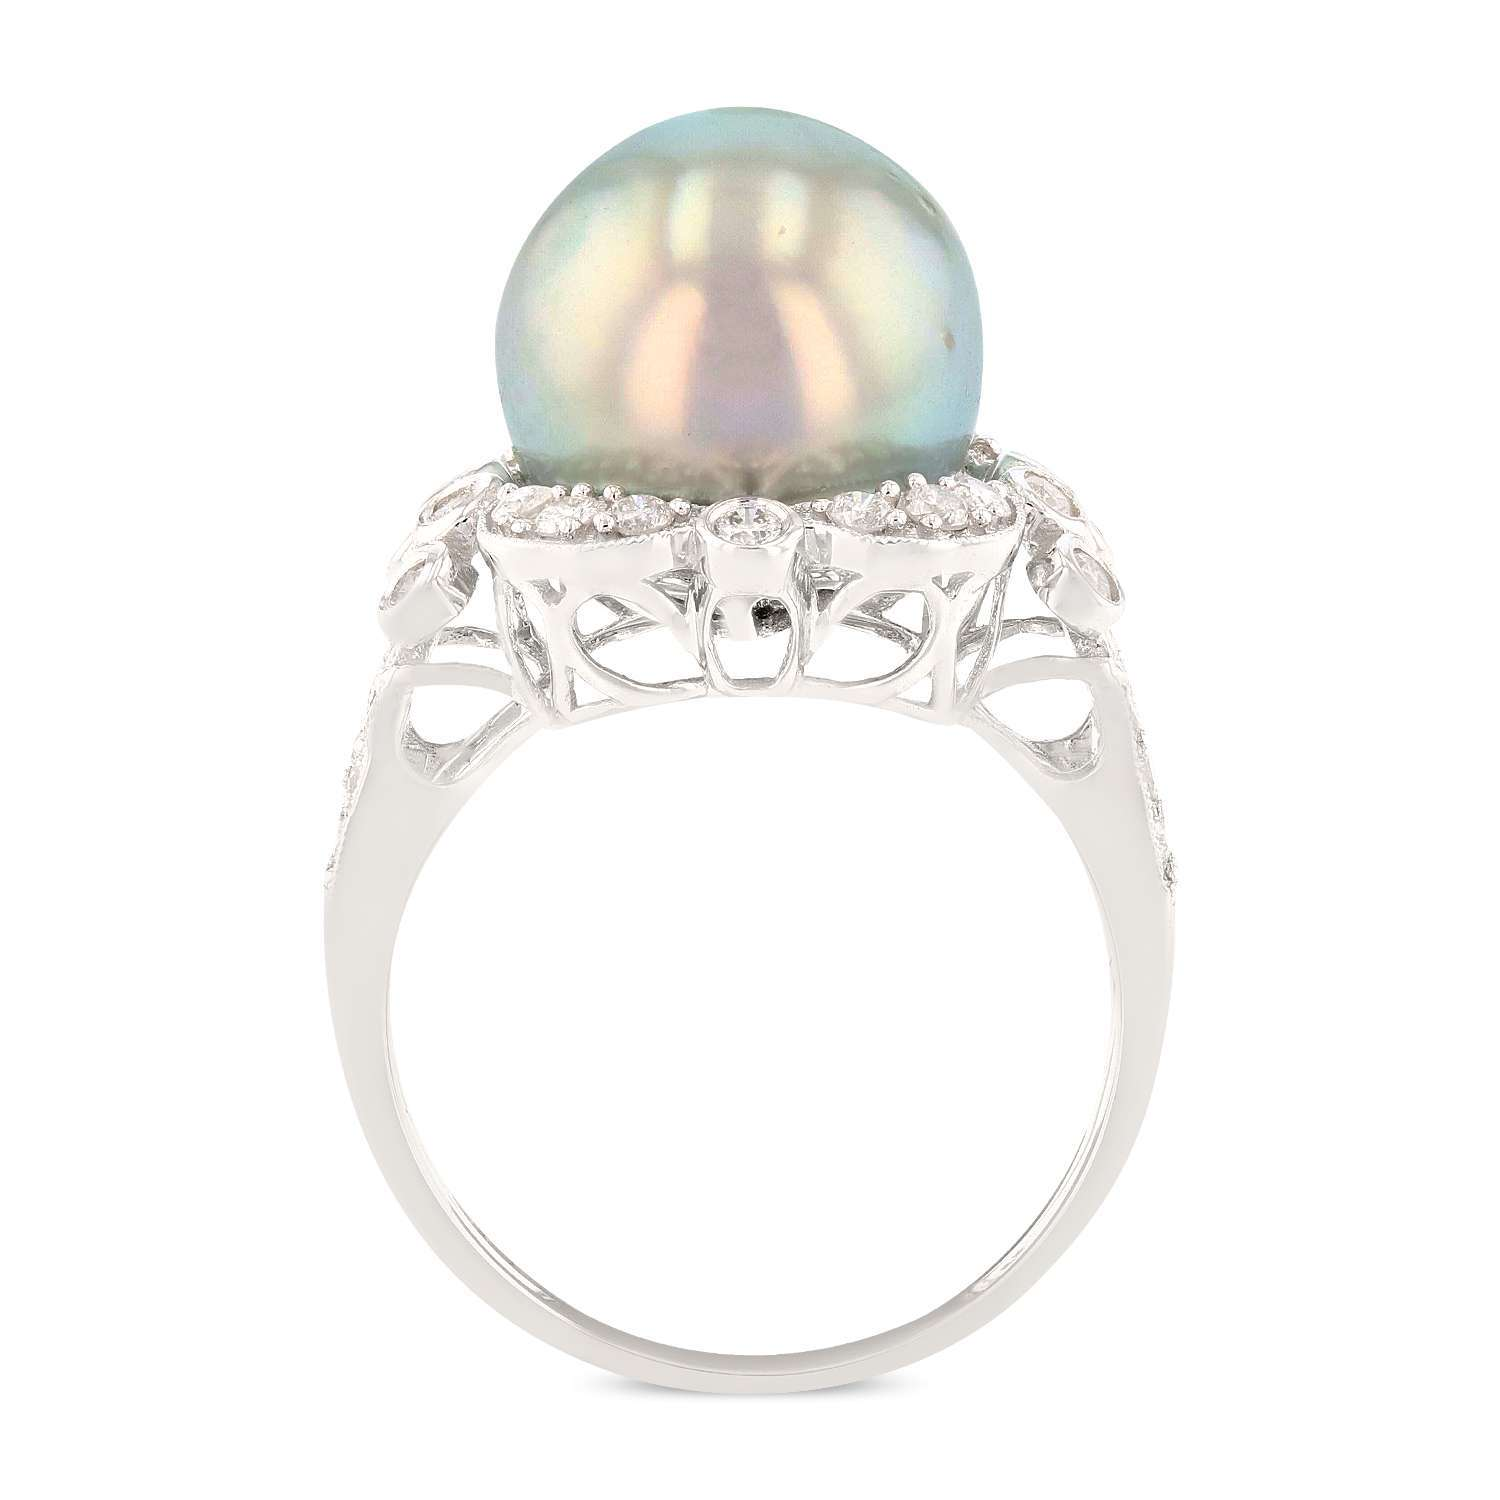 12.0mm Tahitian Cultured Pearl and 0.63ctw Diamond 18K White Gold Ring